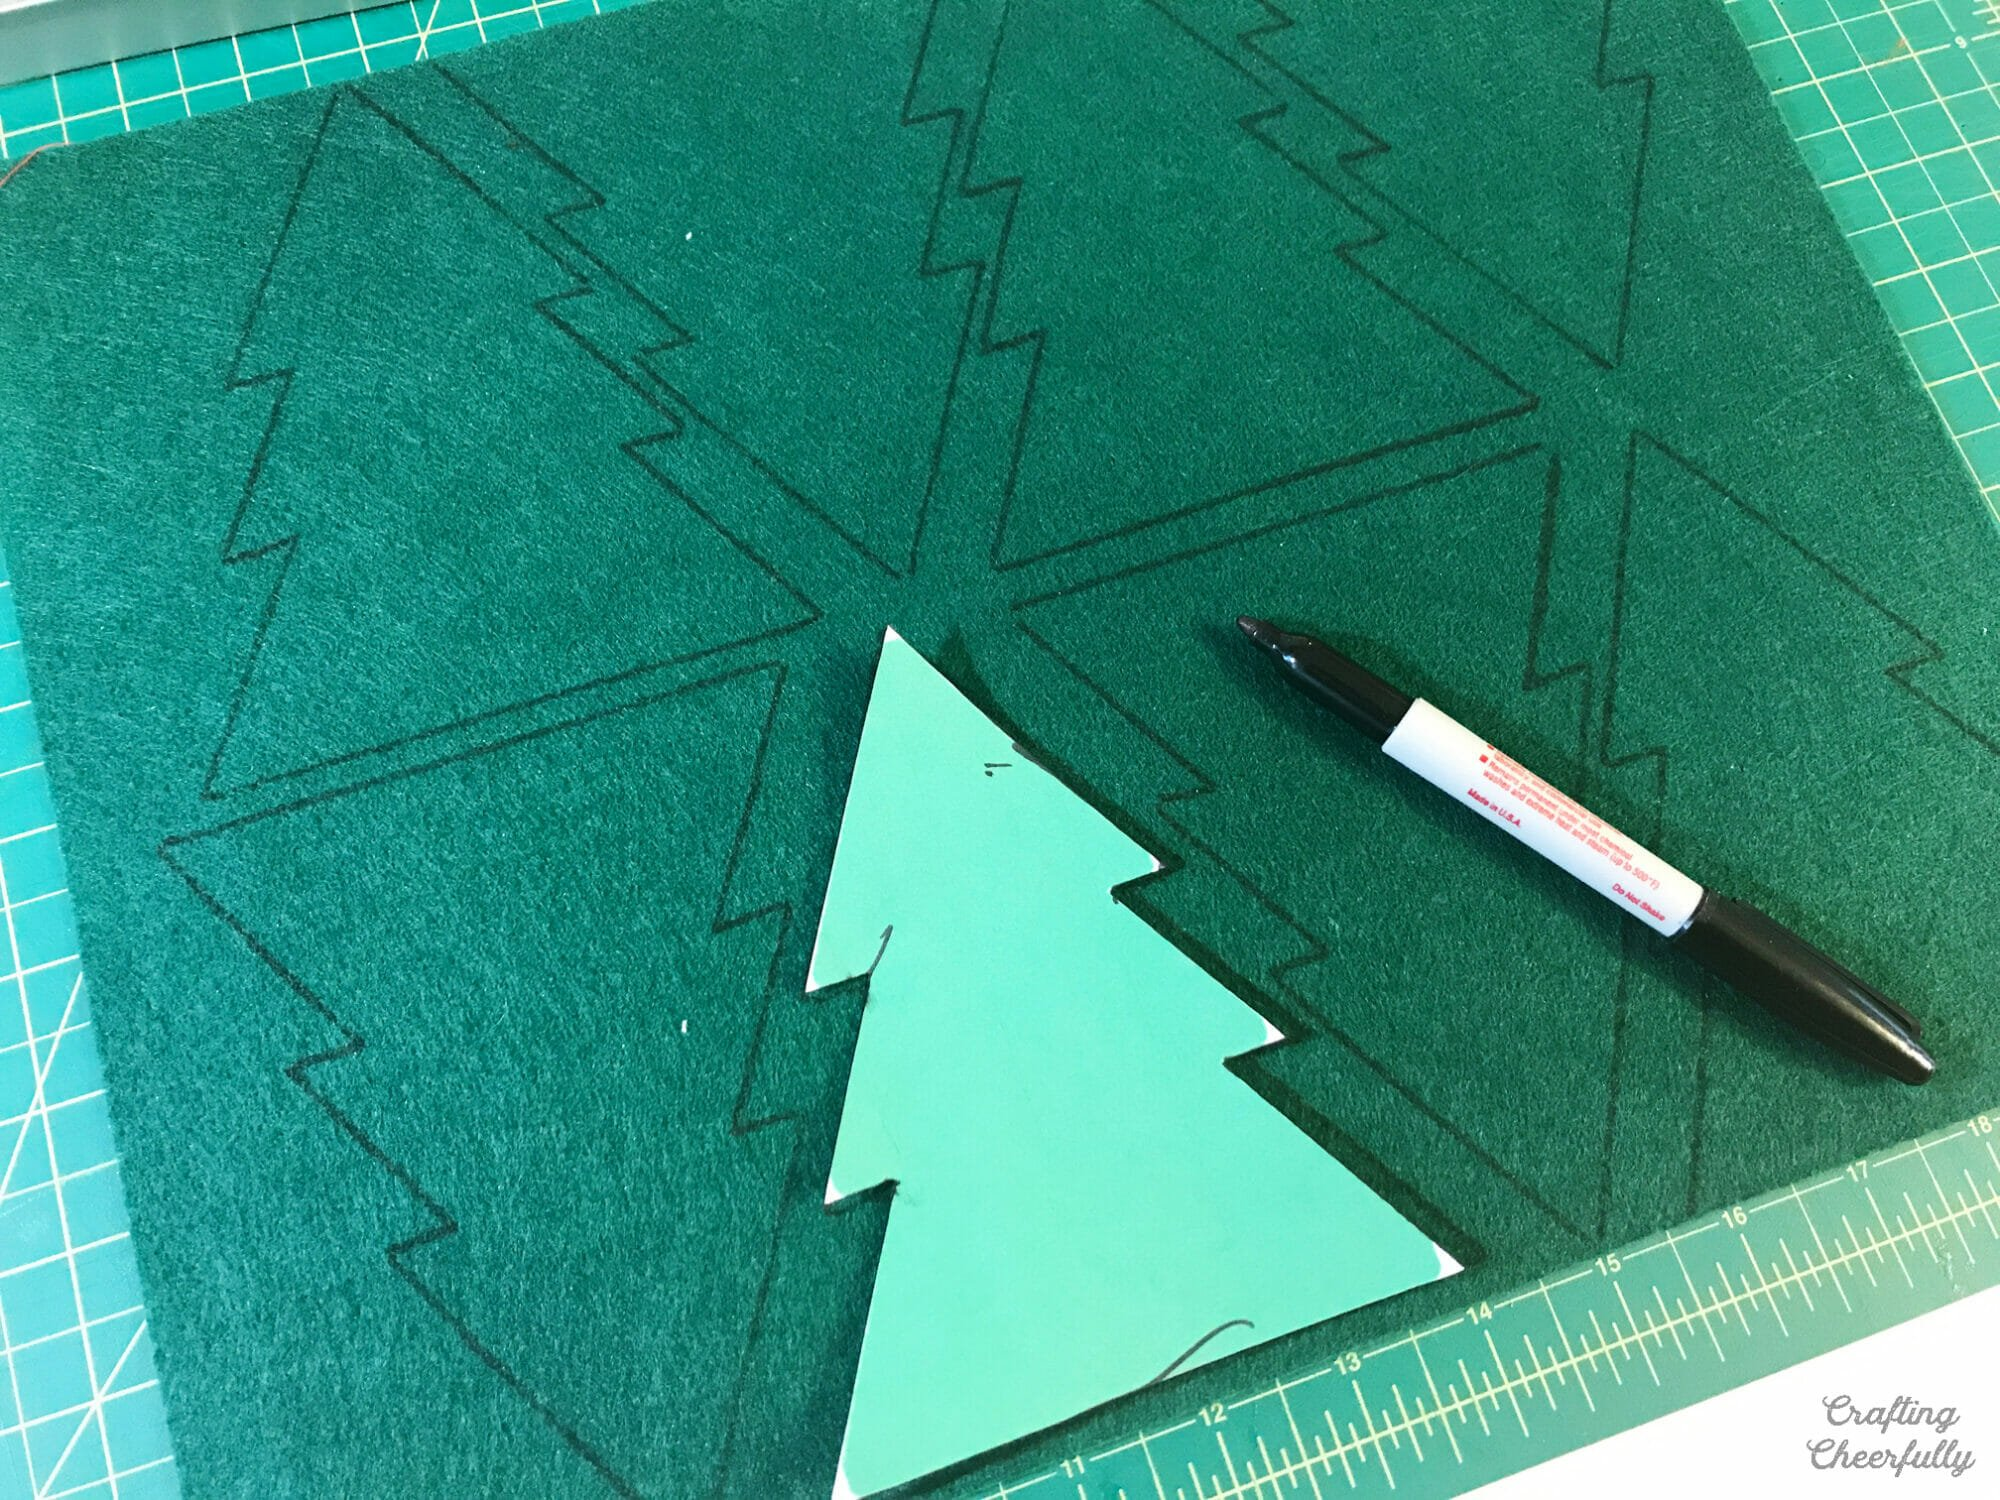 A paper tree template is used to cut Christmas trees from green felt.